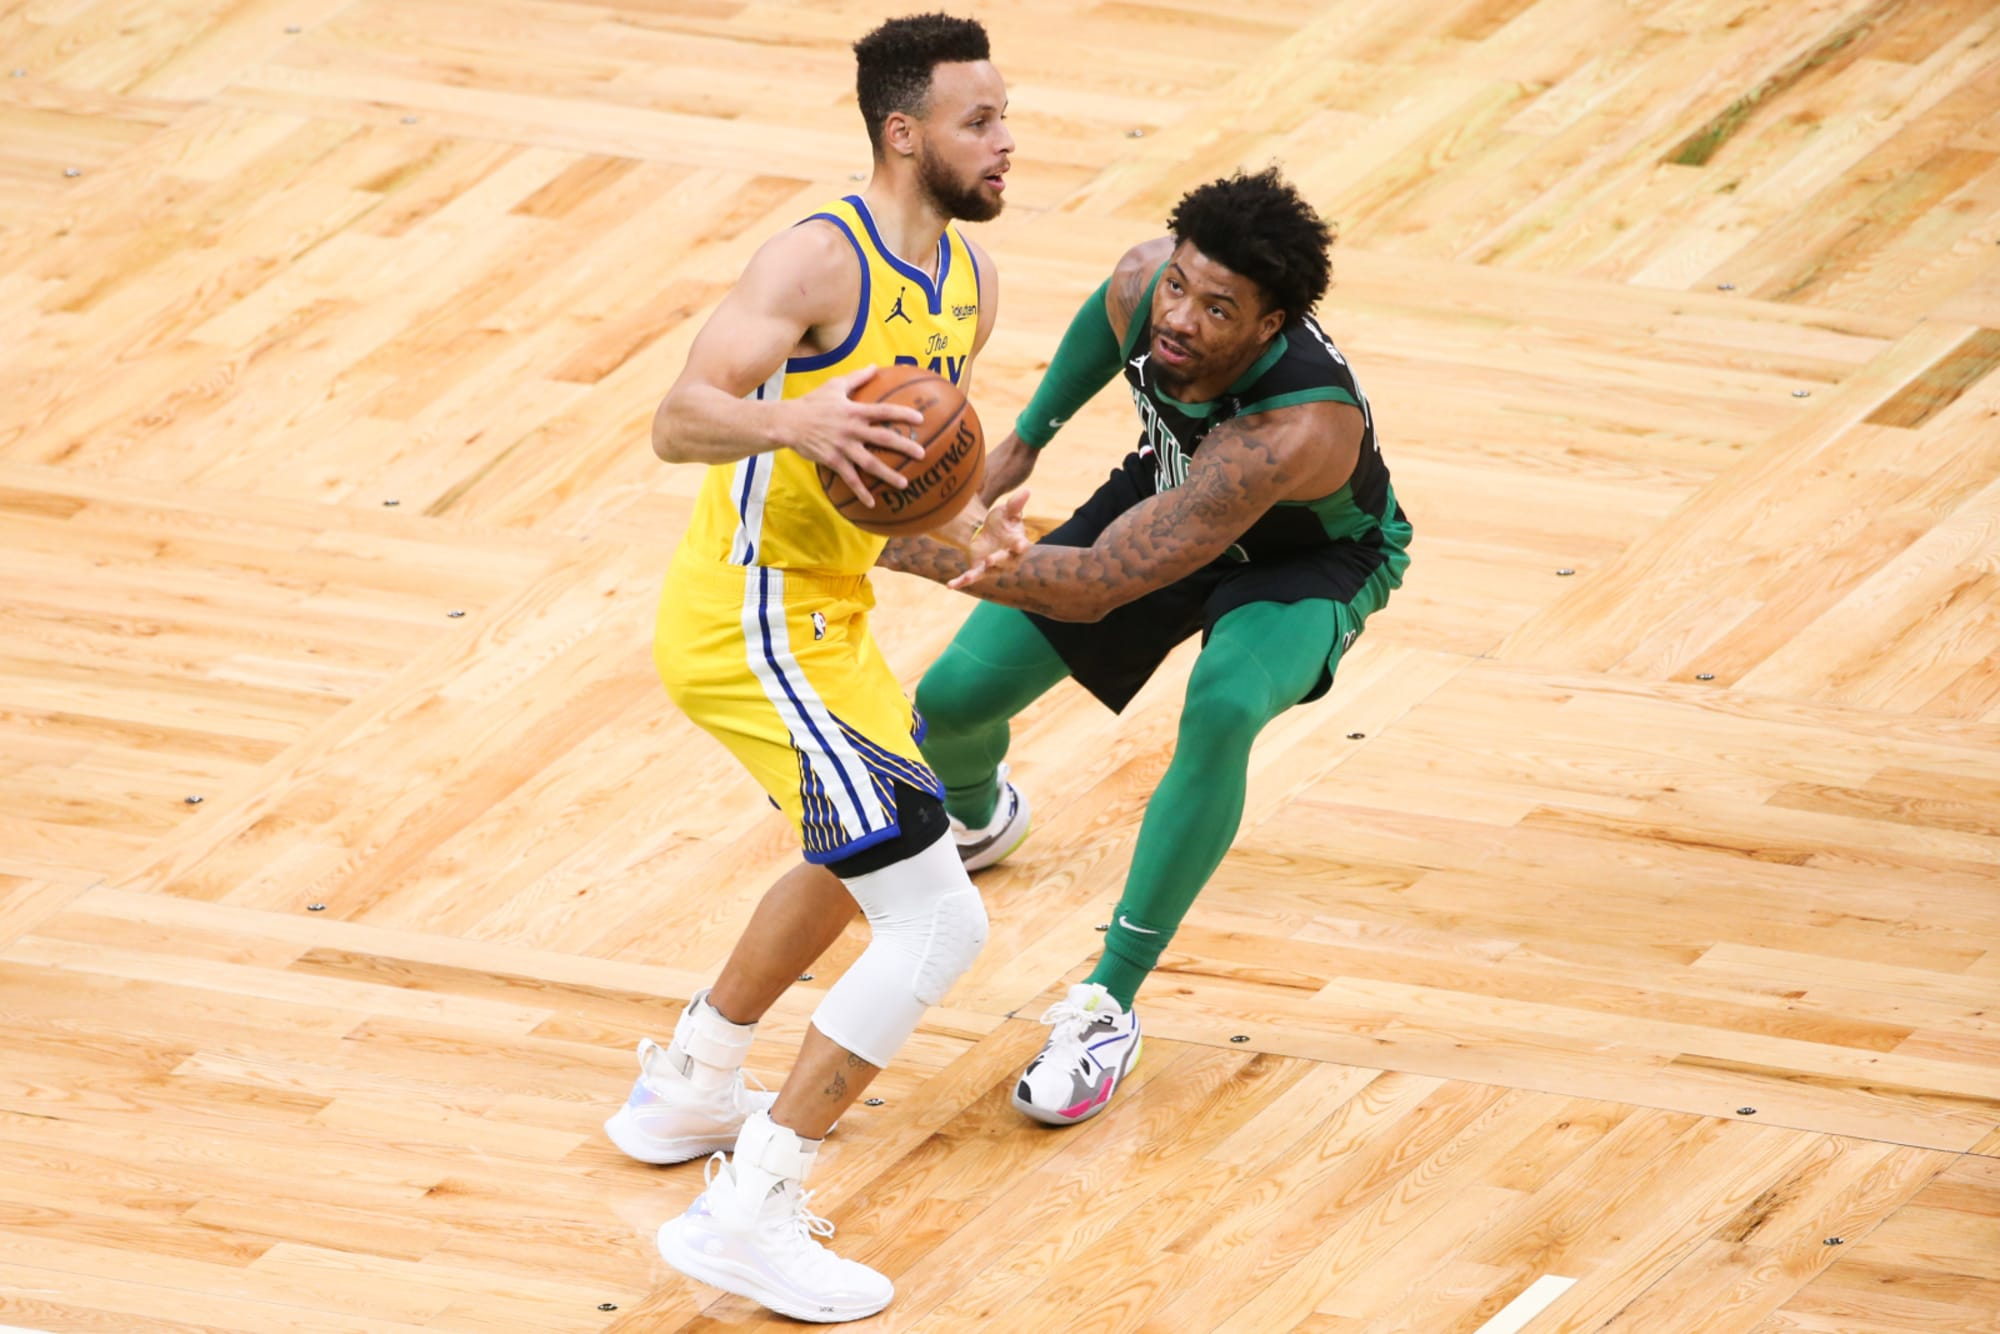 Boston Celtics: MA Congresswoman doesn't want Marcus Smart trade